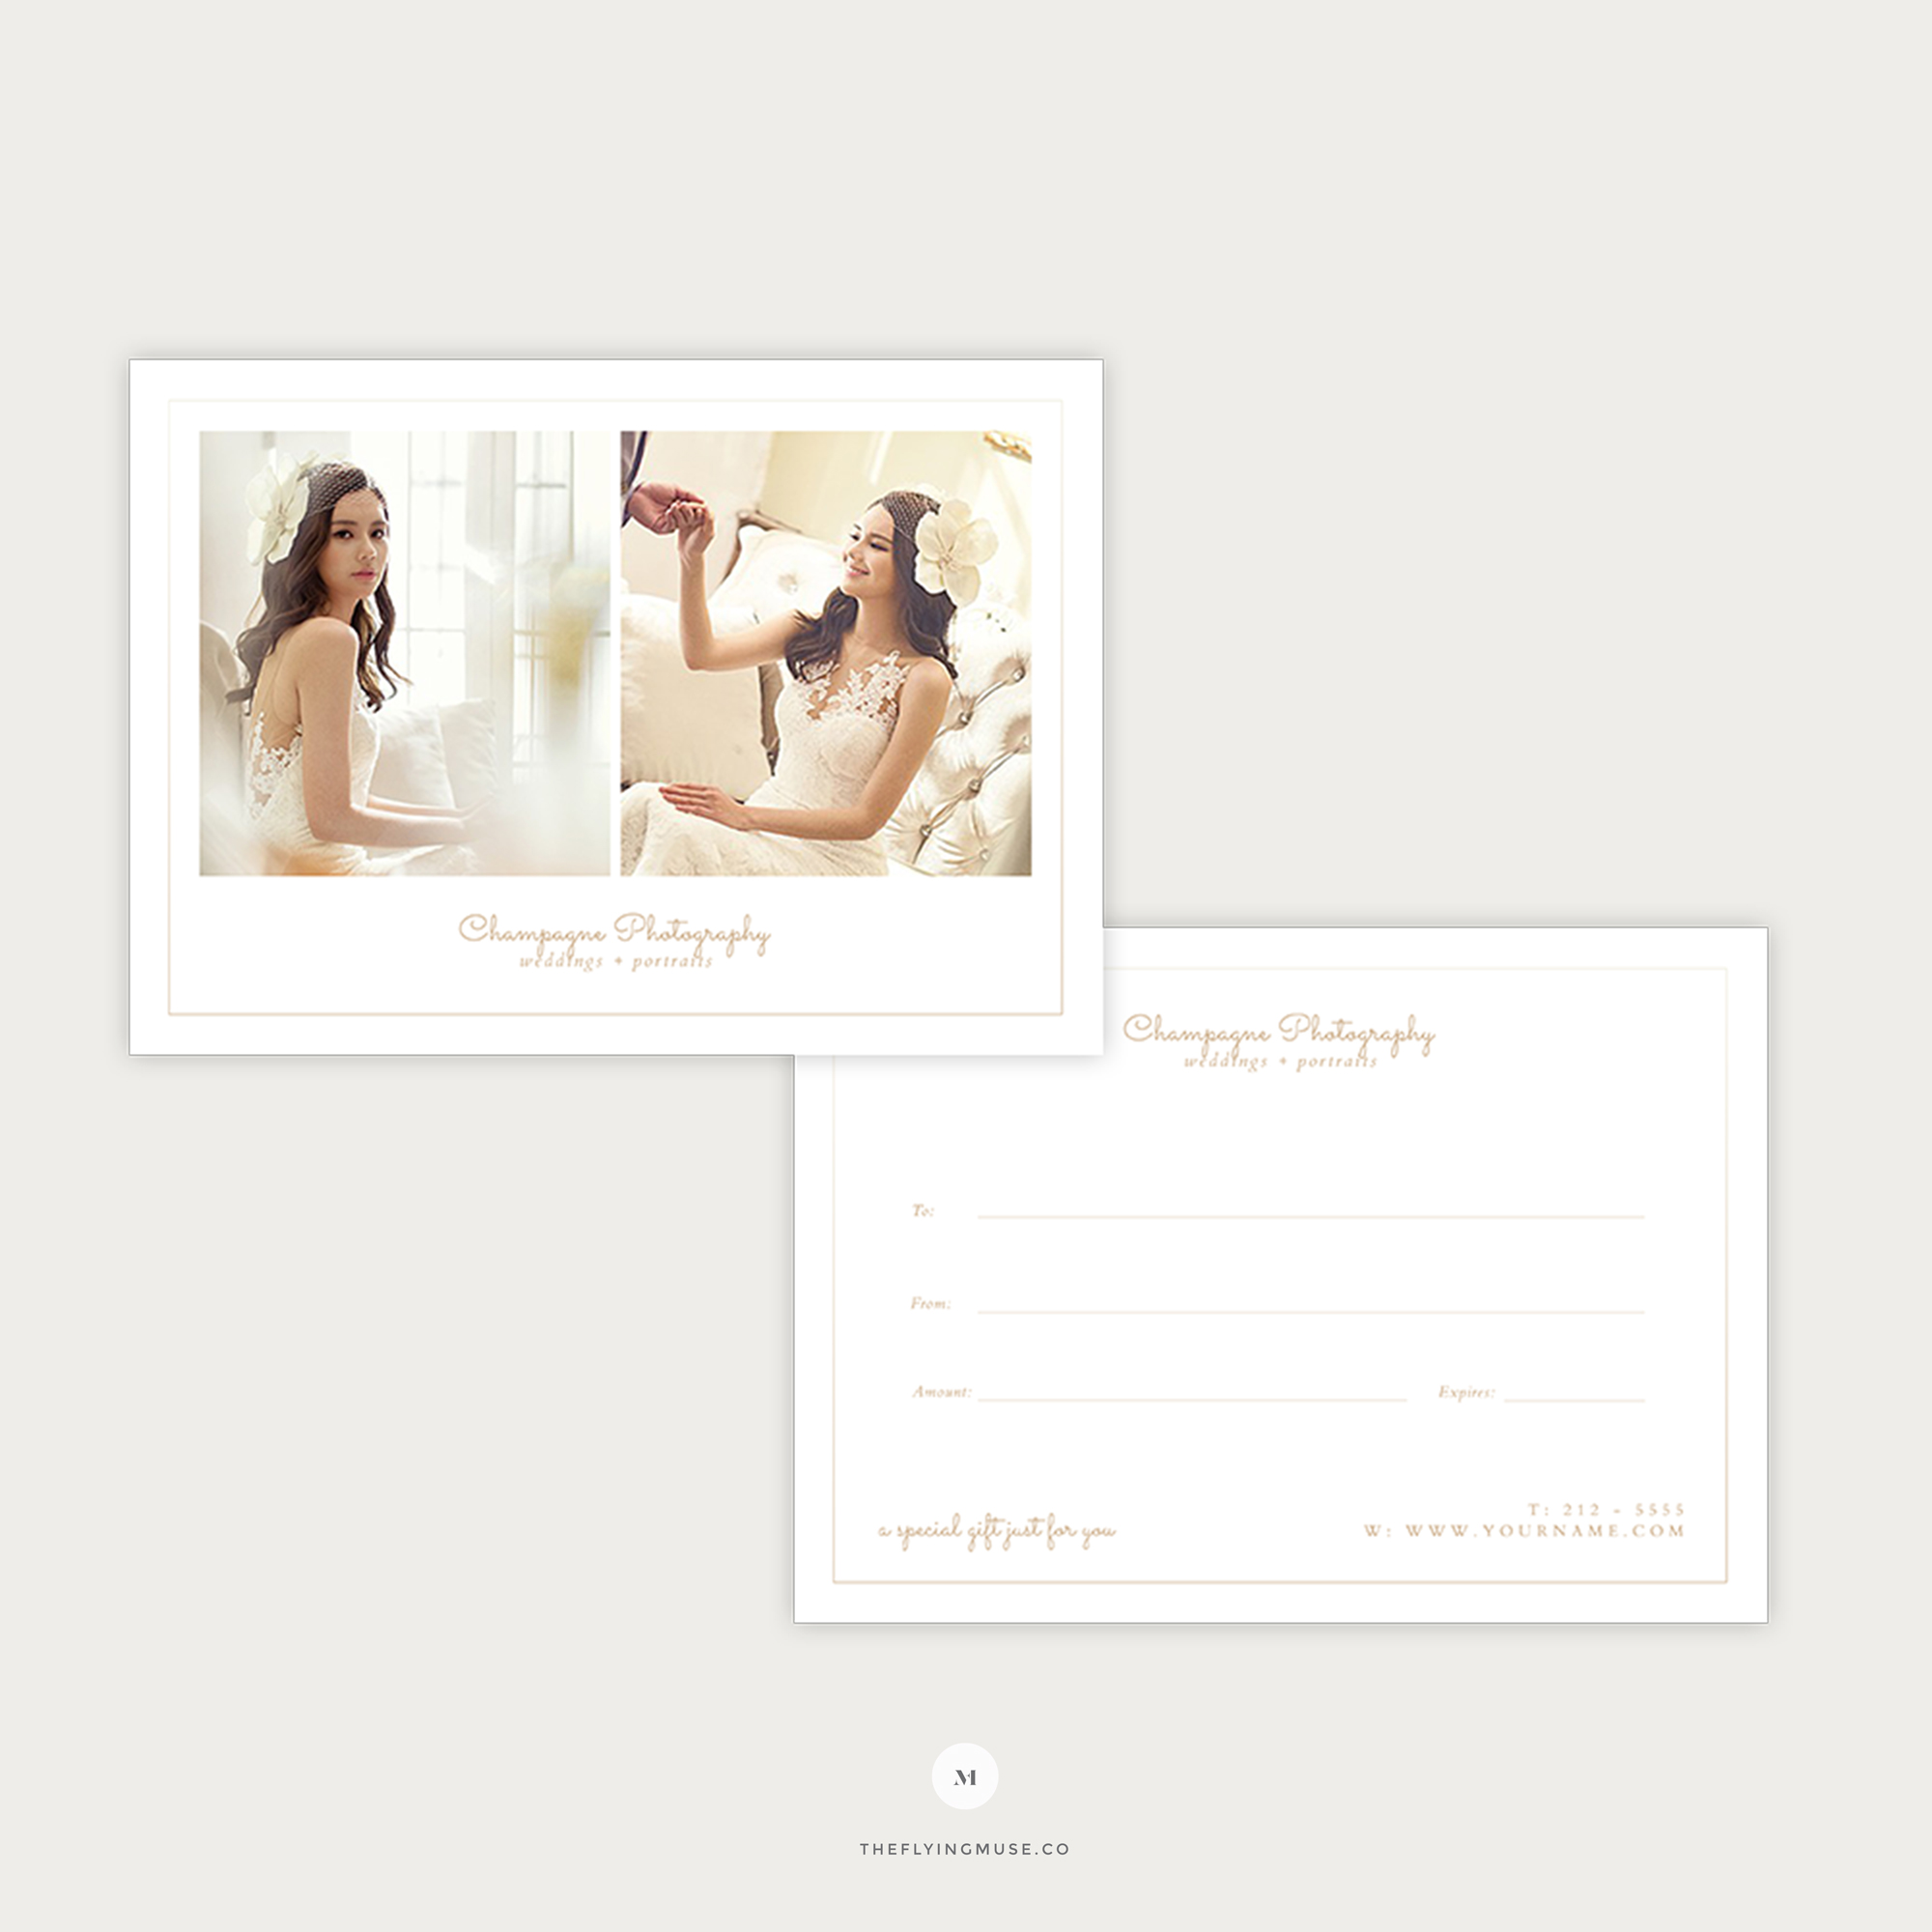 Minimal Gift Certificate Template for Wedding Photographers